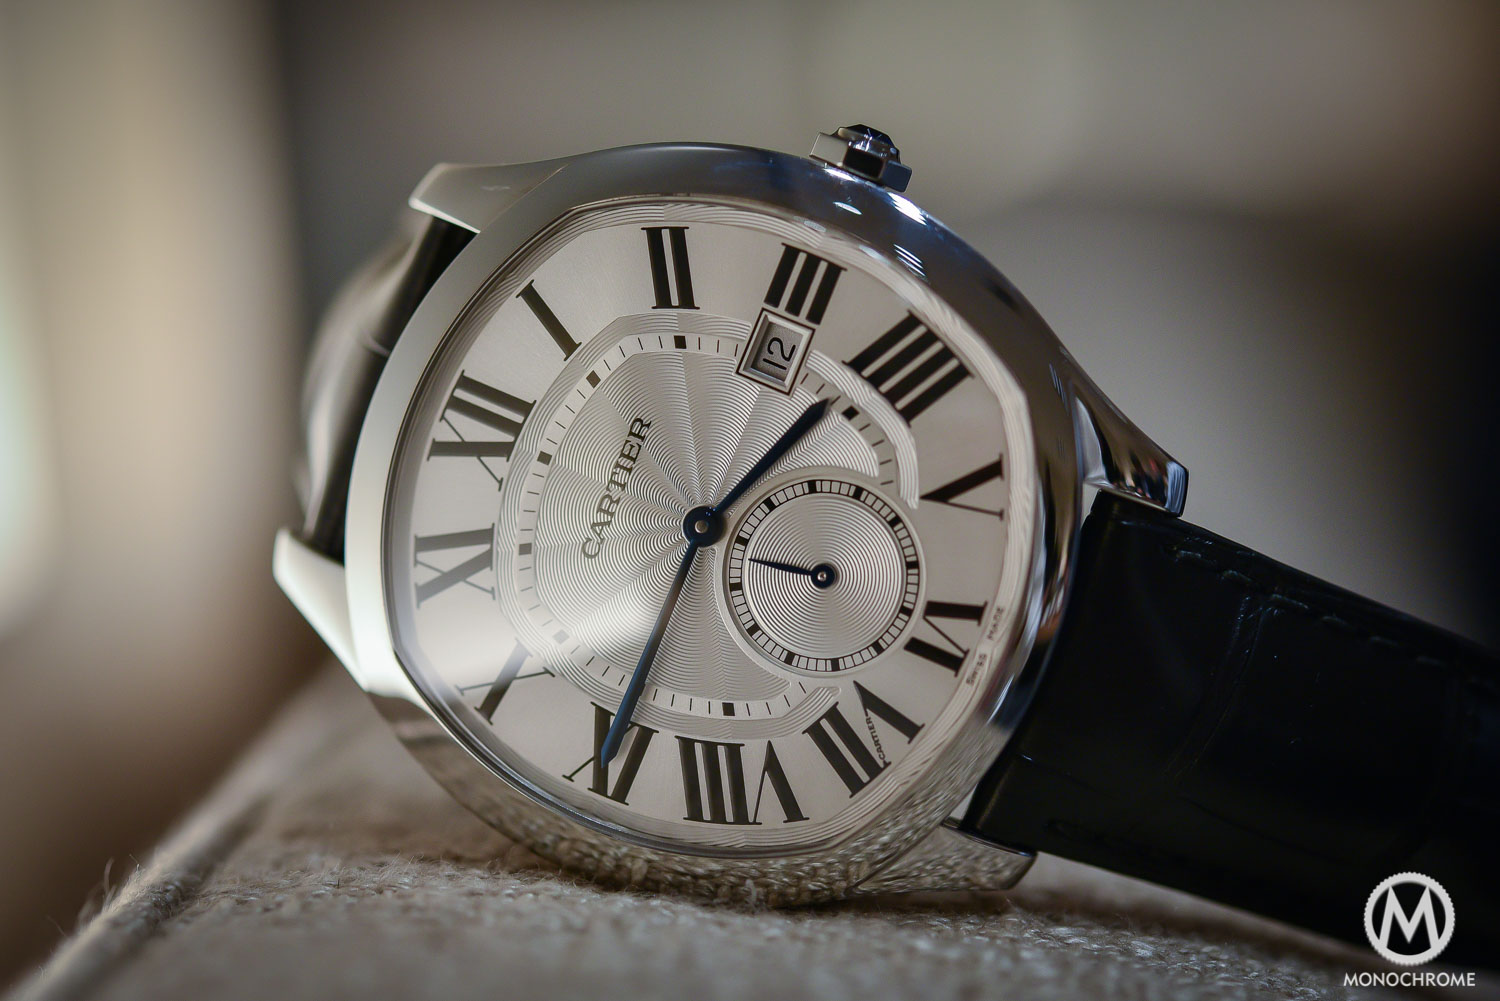 Cartier Drive - Drive de Cartier - SIHH 2016 - case and dial